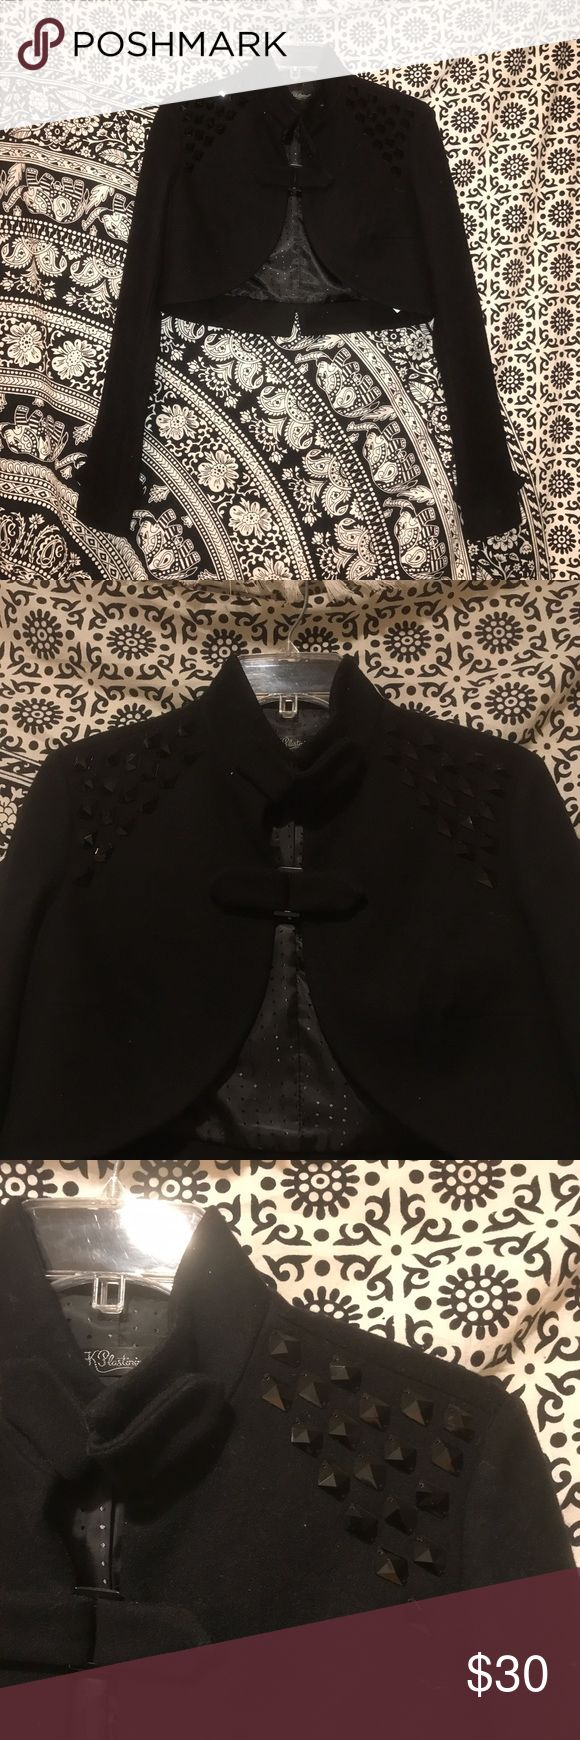 Black short coat Thick coat material. Has black studs on the shoulders of the jacket. Worn once. Great condition. K Plastinina Jackets & Coats